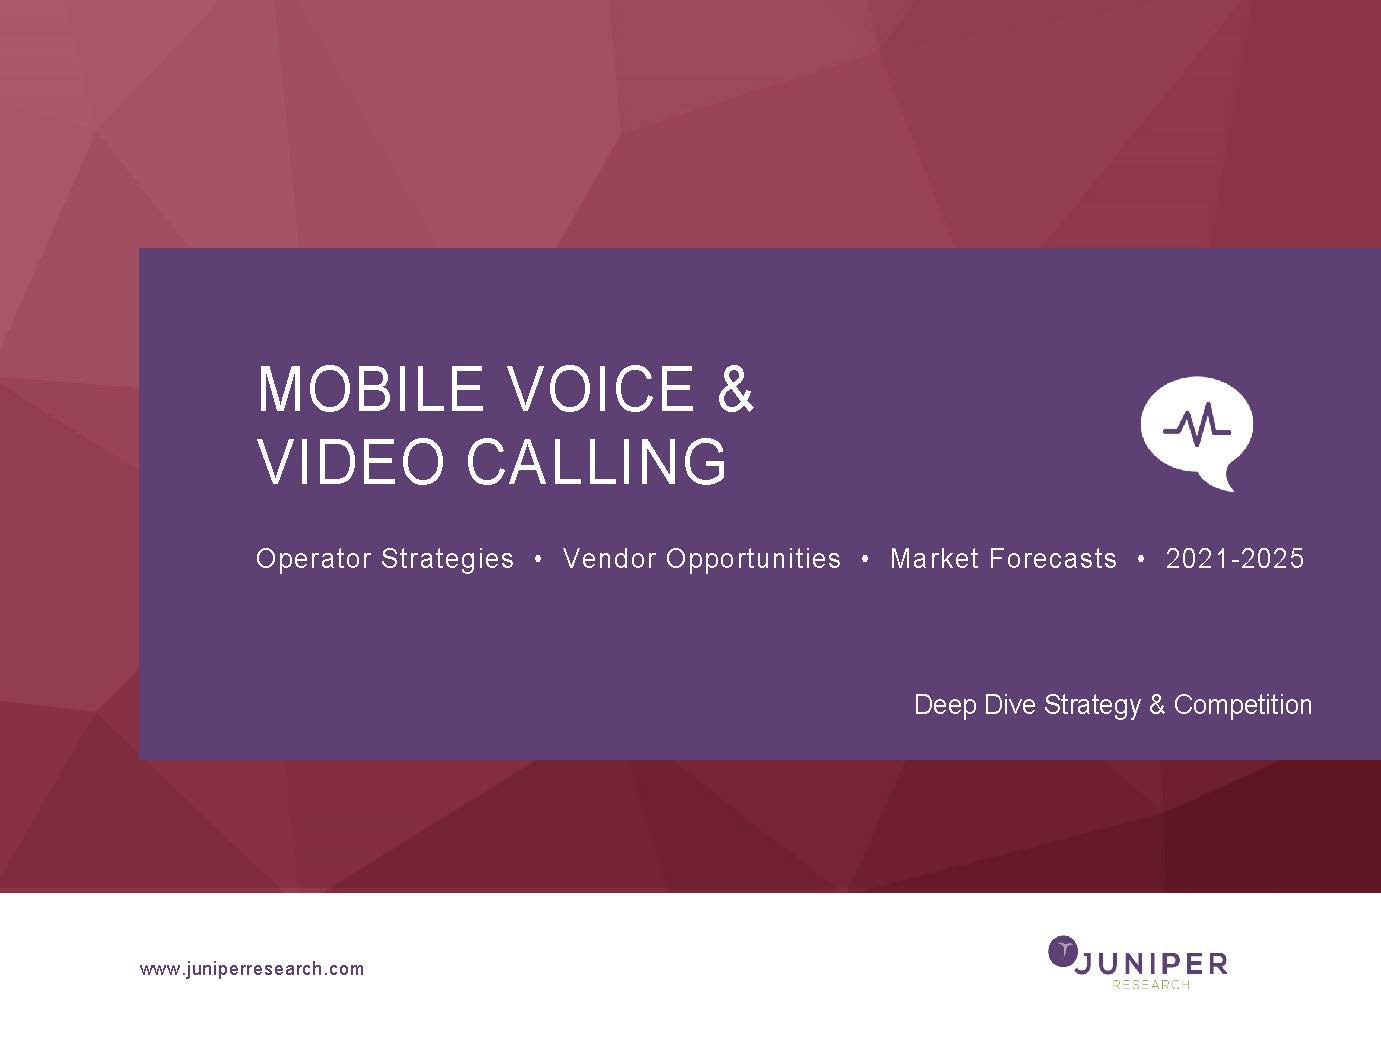 Mobile Voice & Video Calling: Deep Dive Strategy & Competition 2021-2025